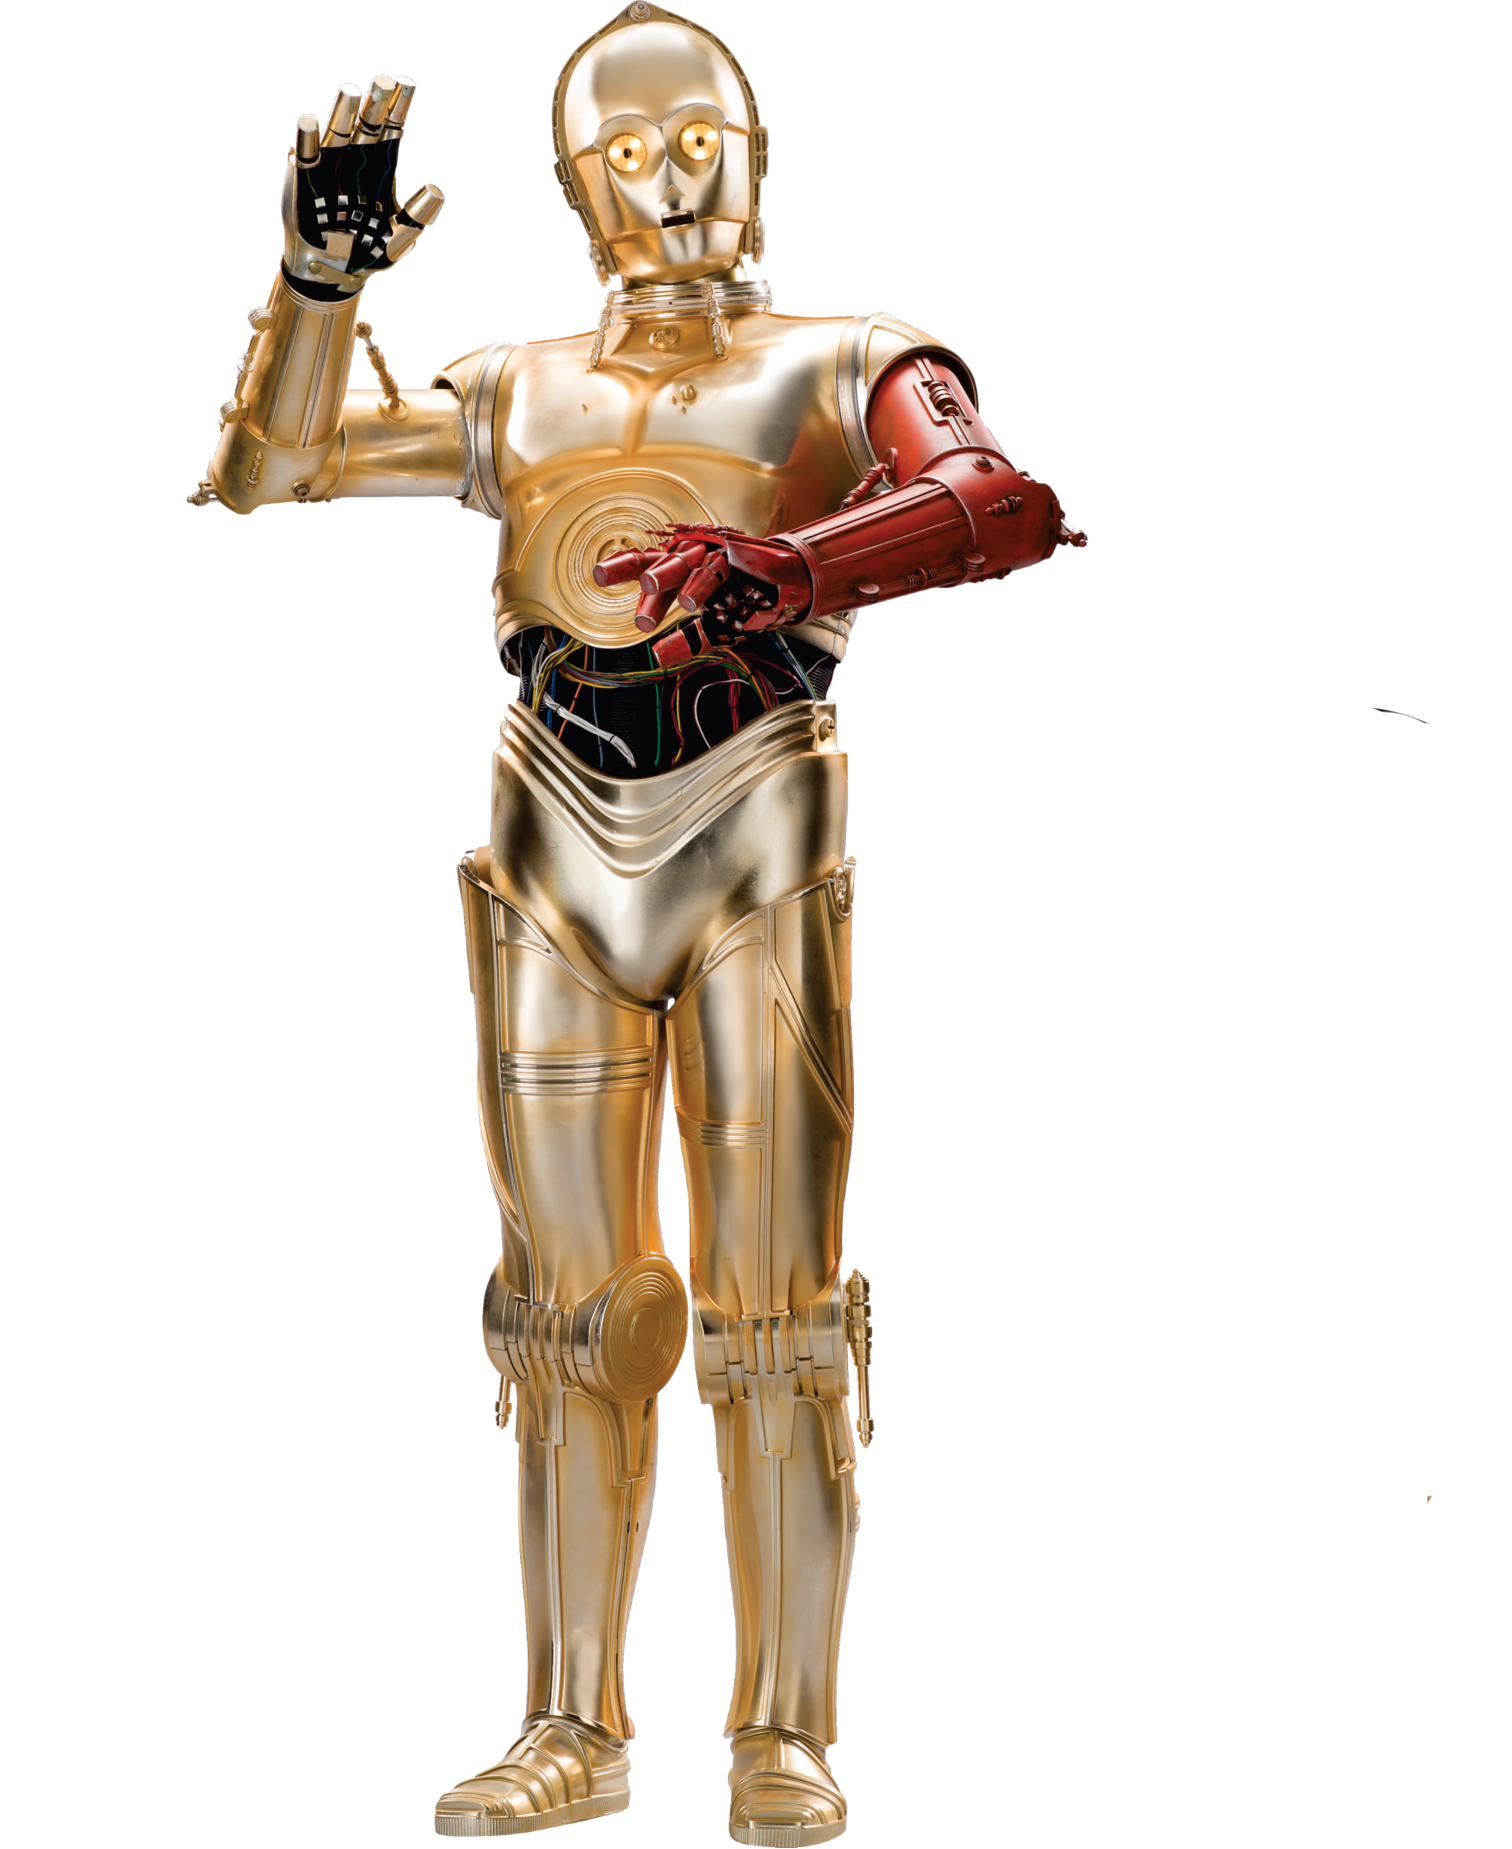 Star wars characters png. Image red arm c